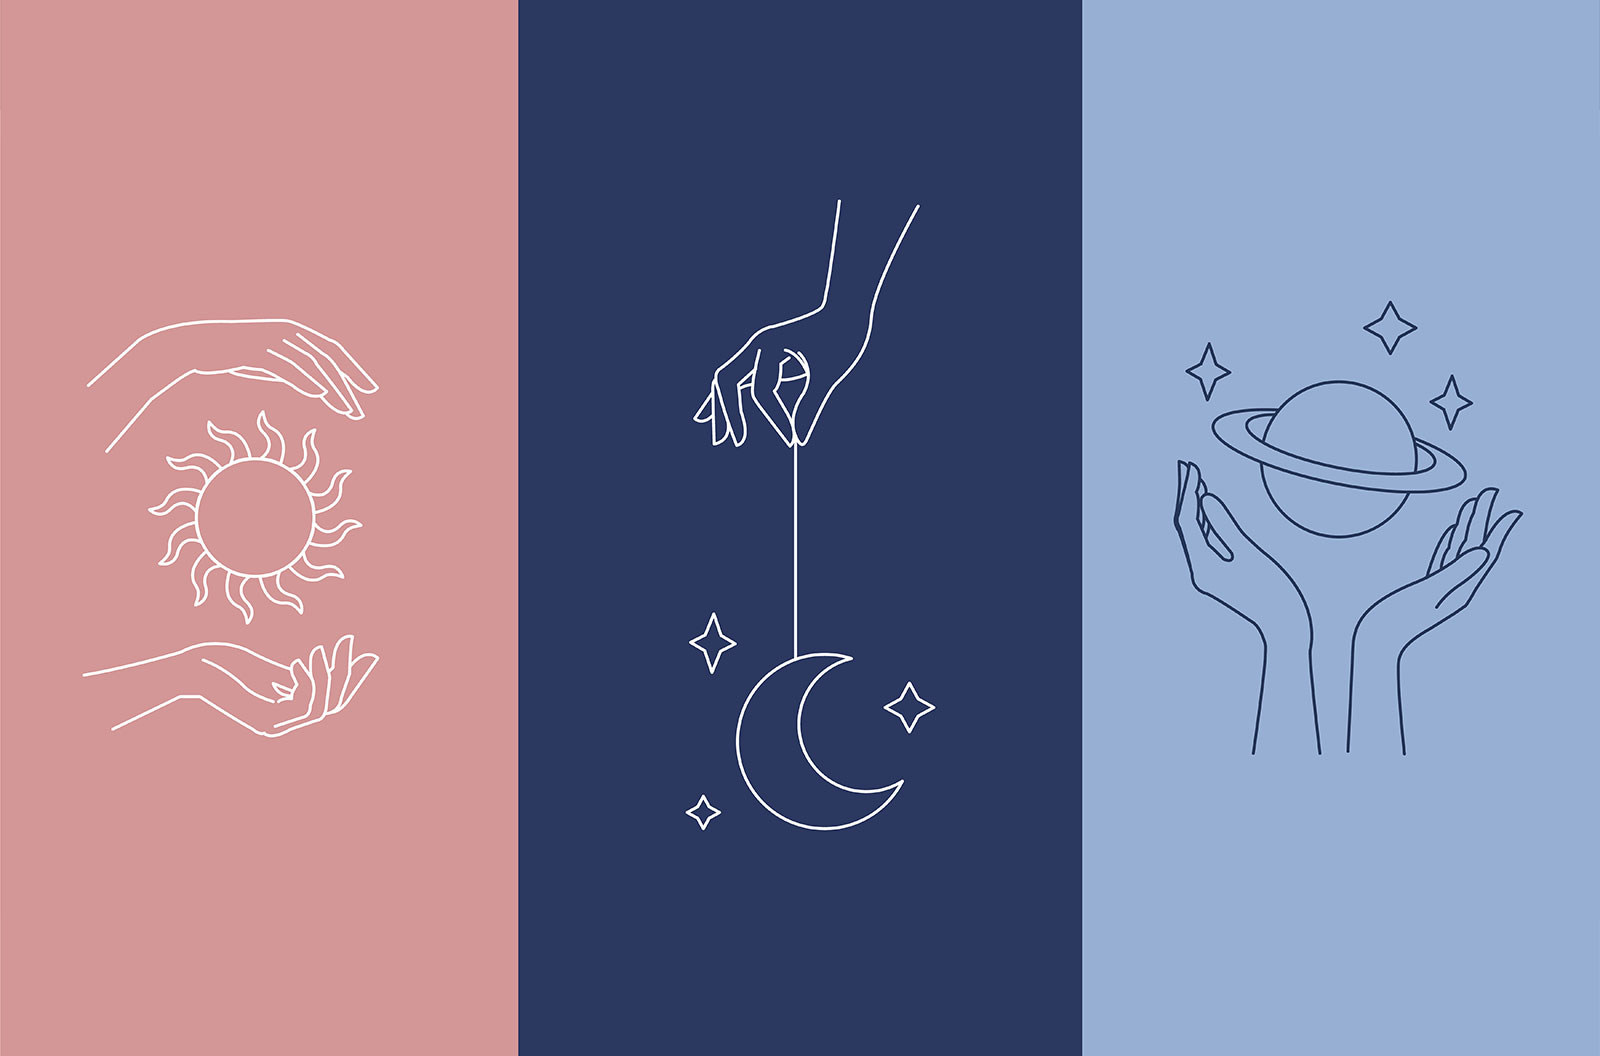 Logo design with woman's hand and mystical celestial elements - sun, moon and planet.